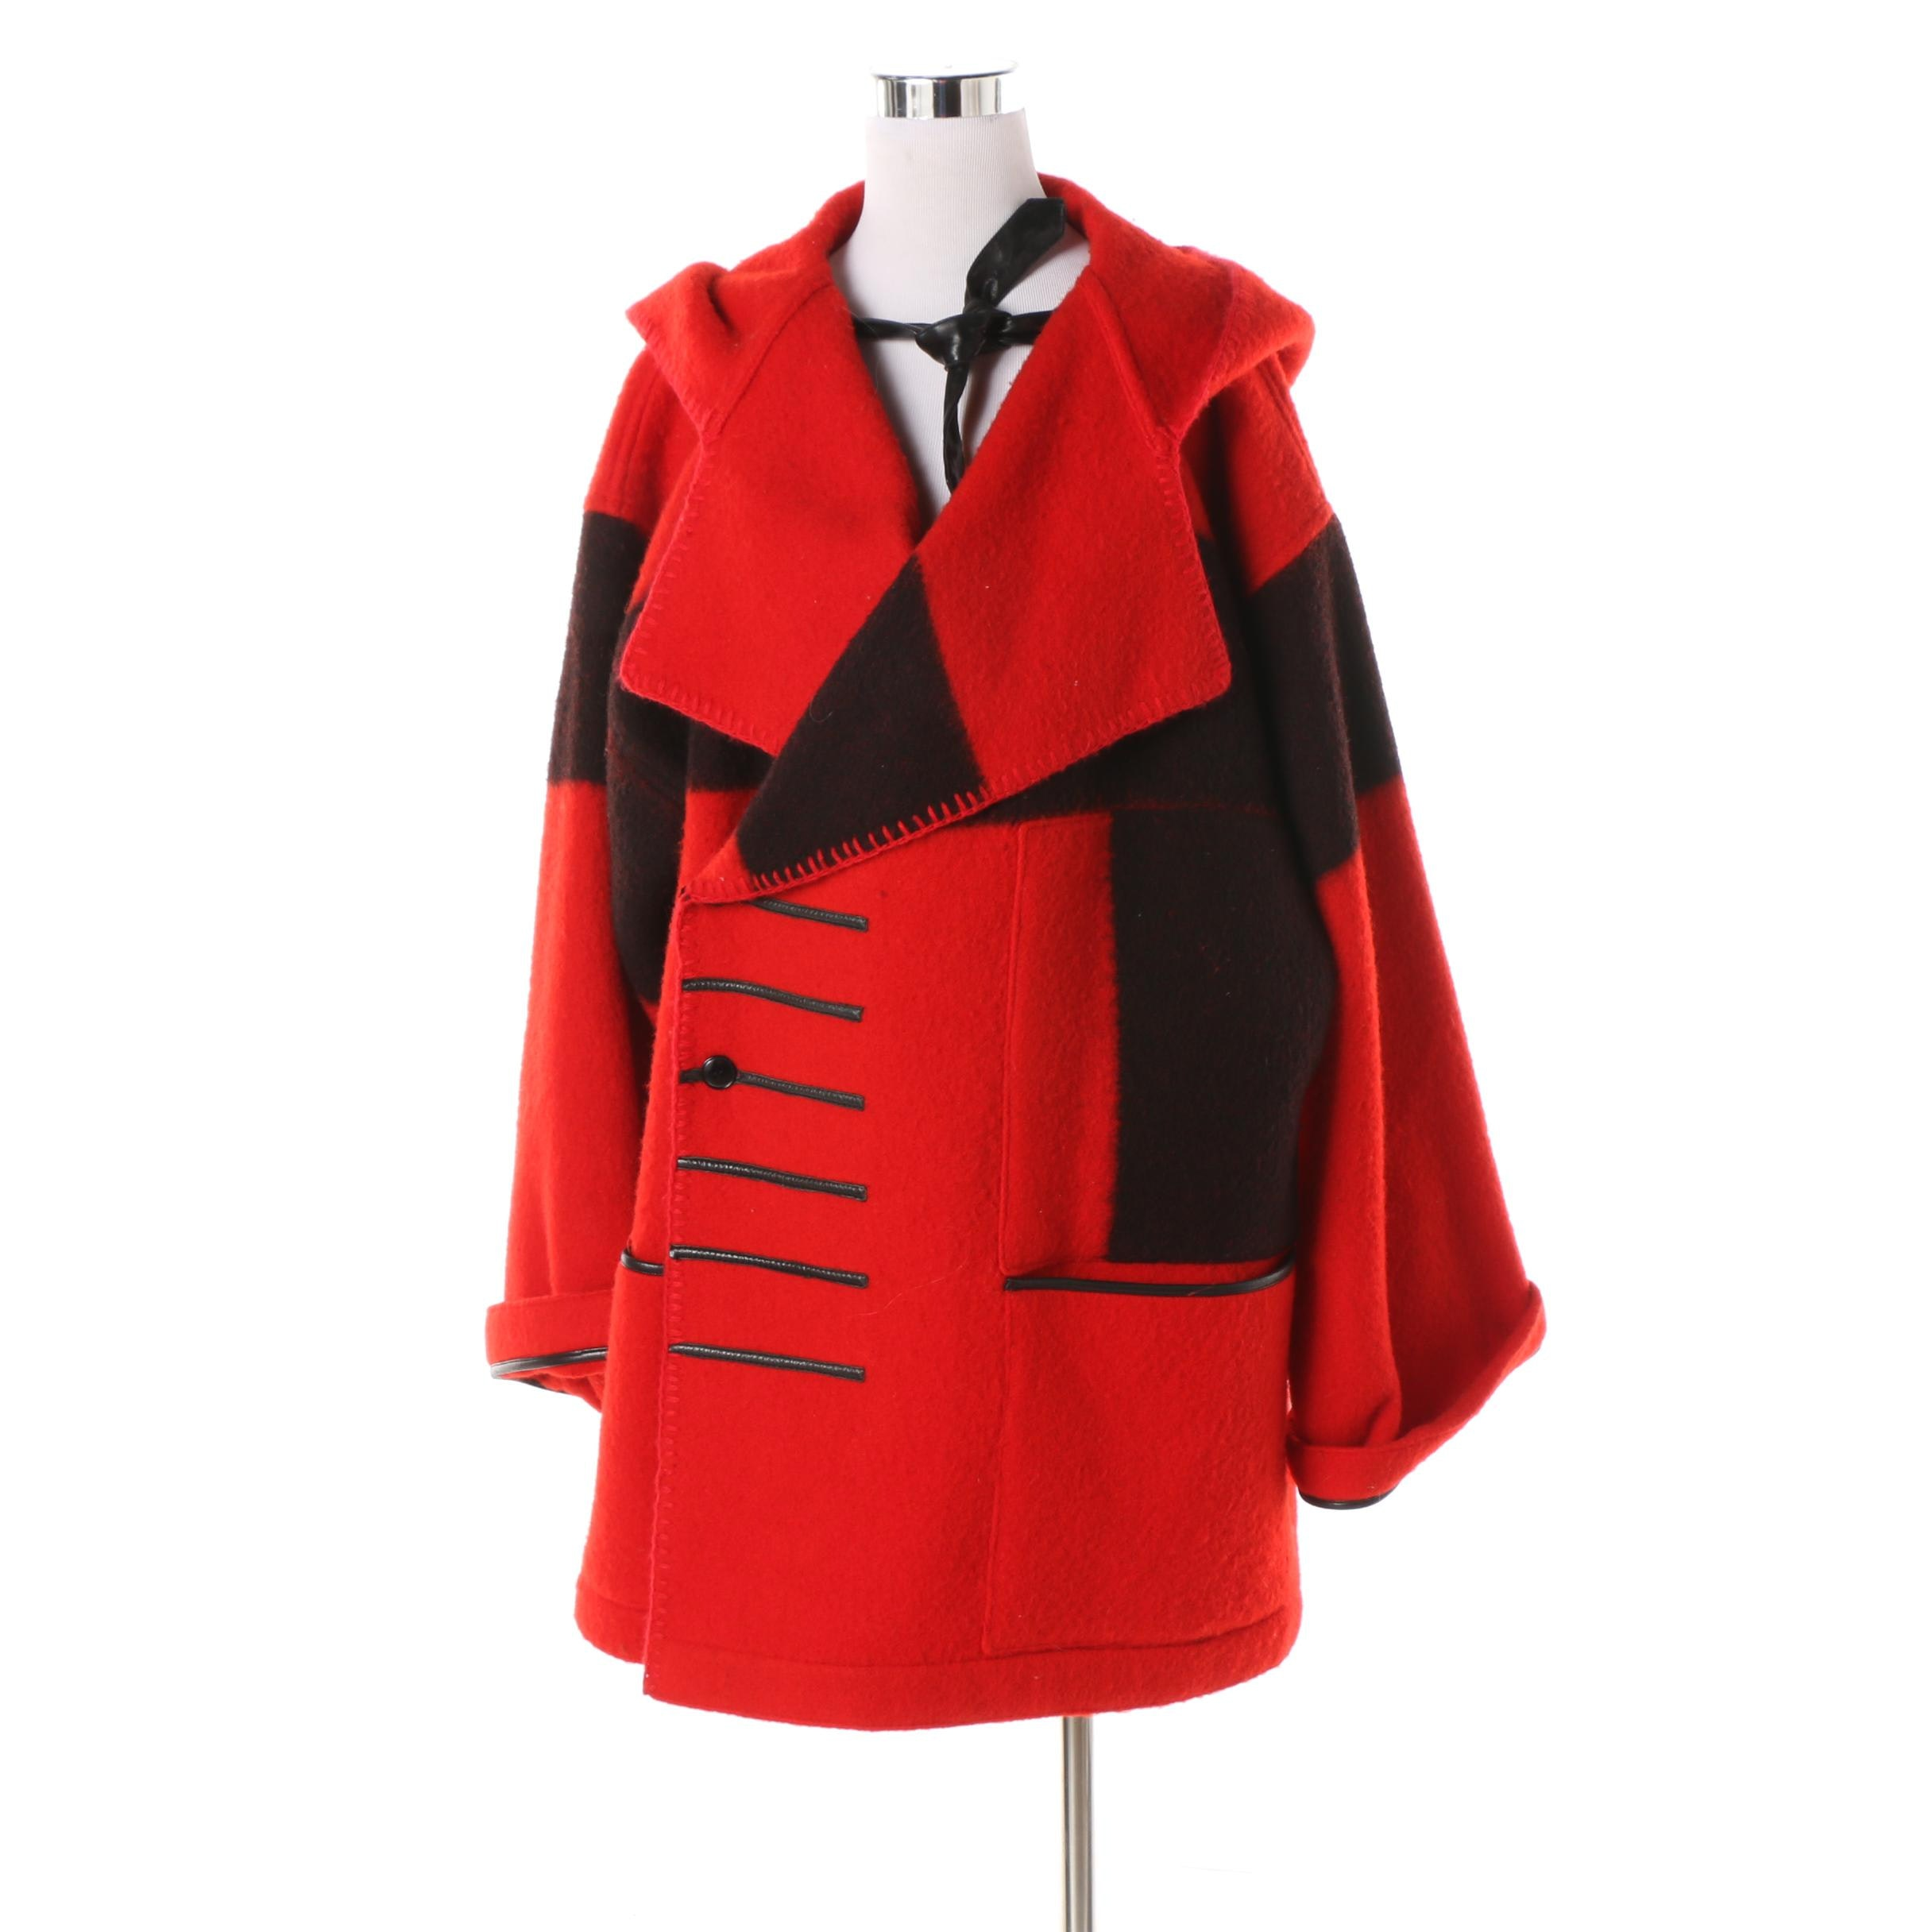 1980s Jean Charles de Castelbajac Black and Red Wool Colorblock Coat